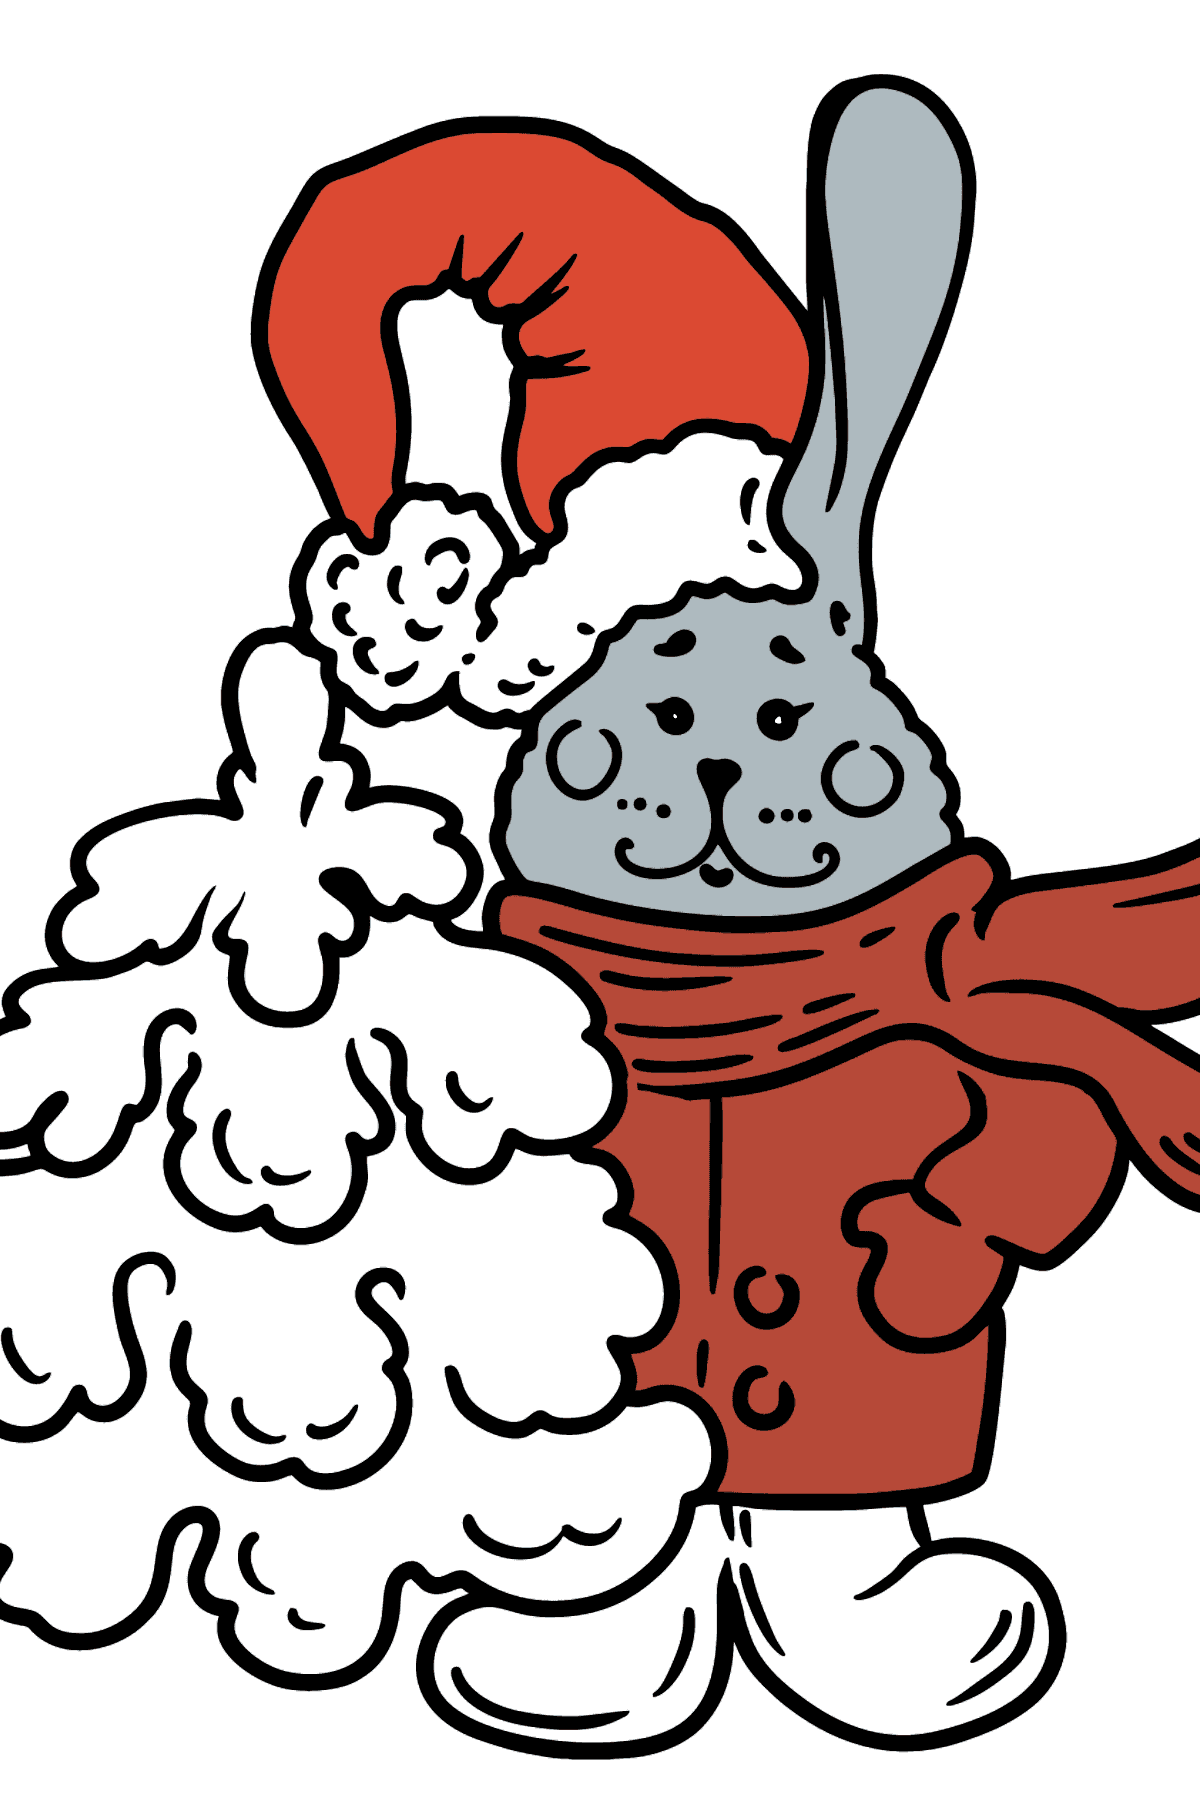 Christmas Bunny coloring page - Coloring Pages for Kids